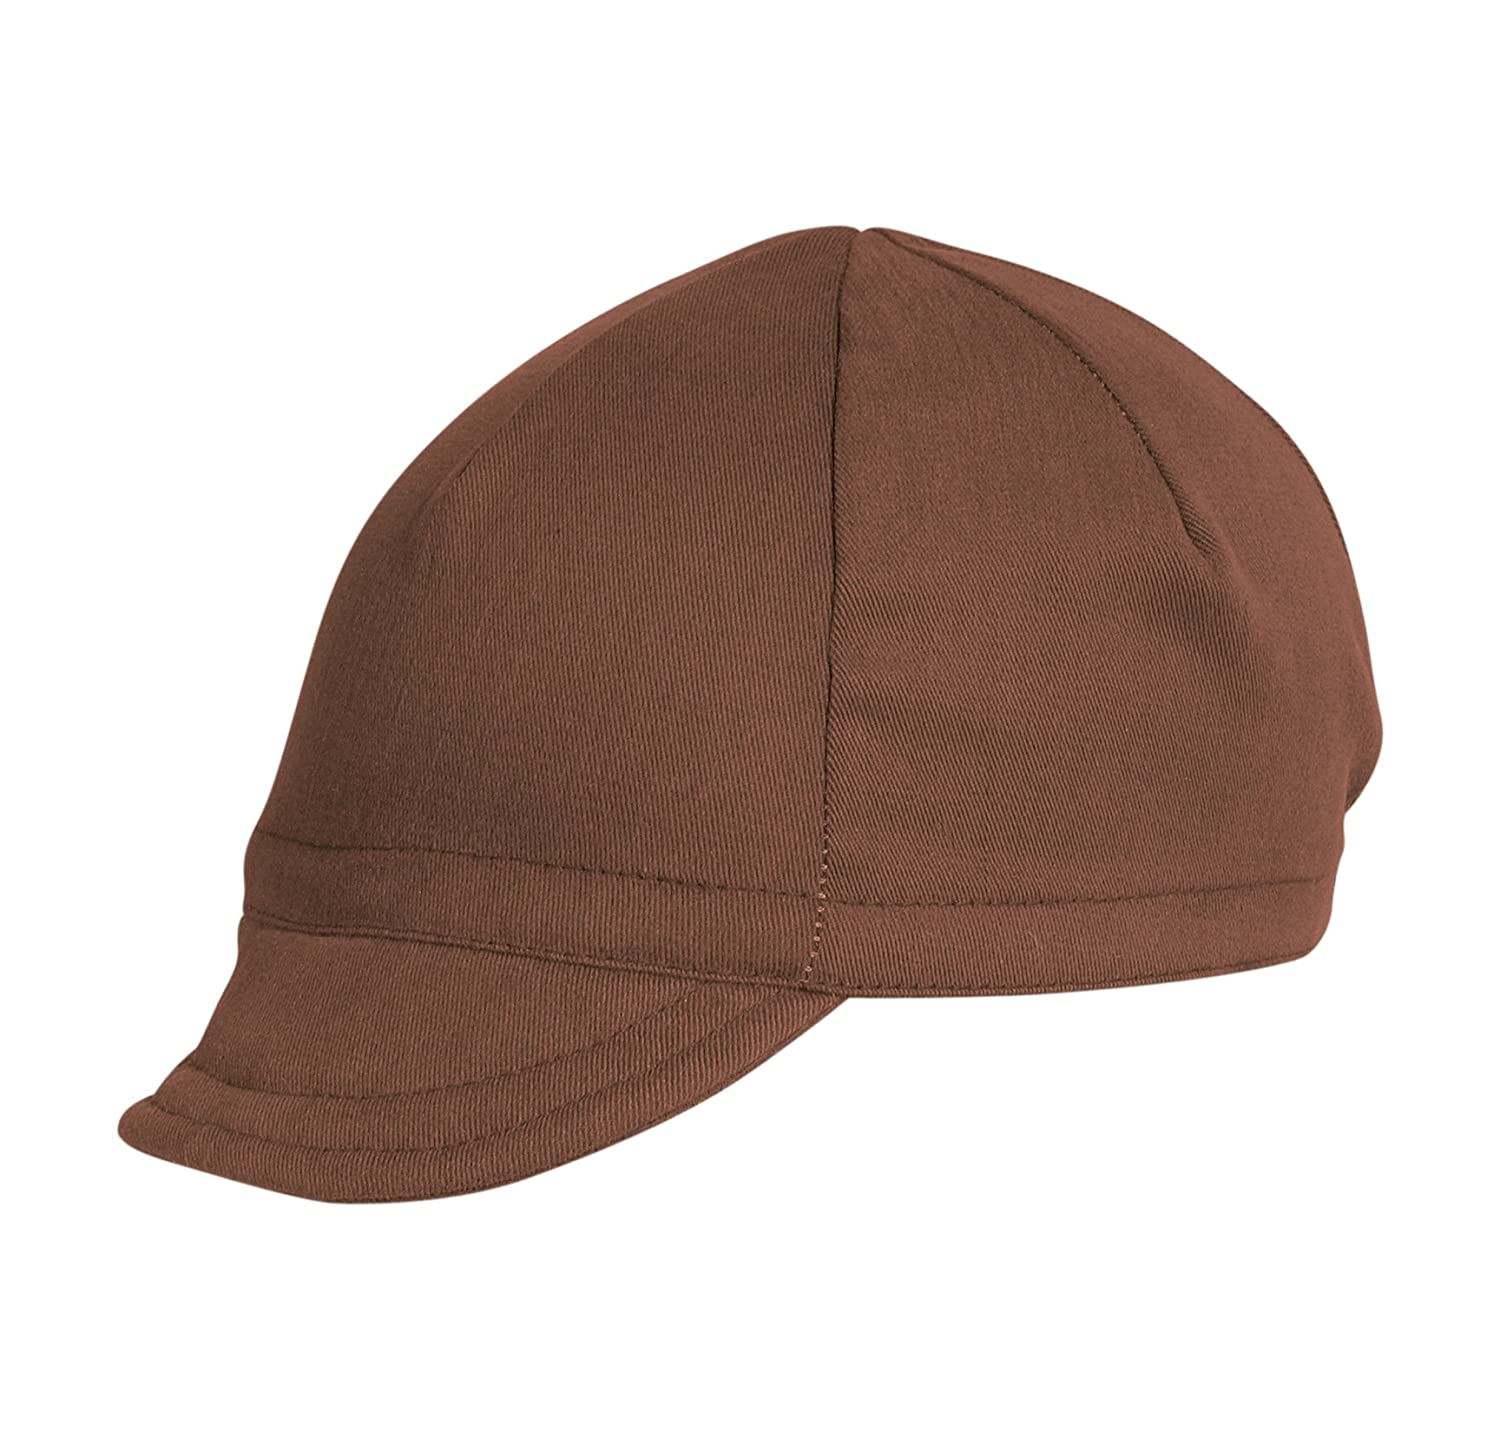 Pace Euro Brushed Twill Nutmeg Cycling Cap 14-0203